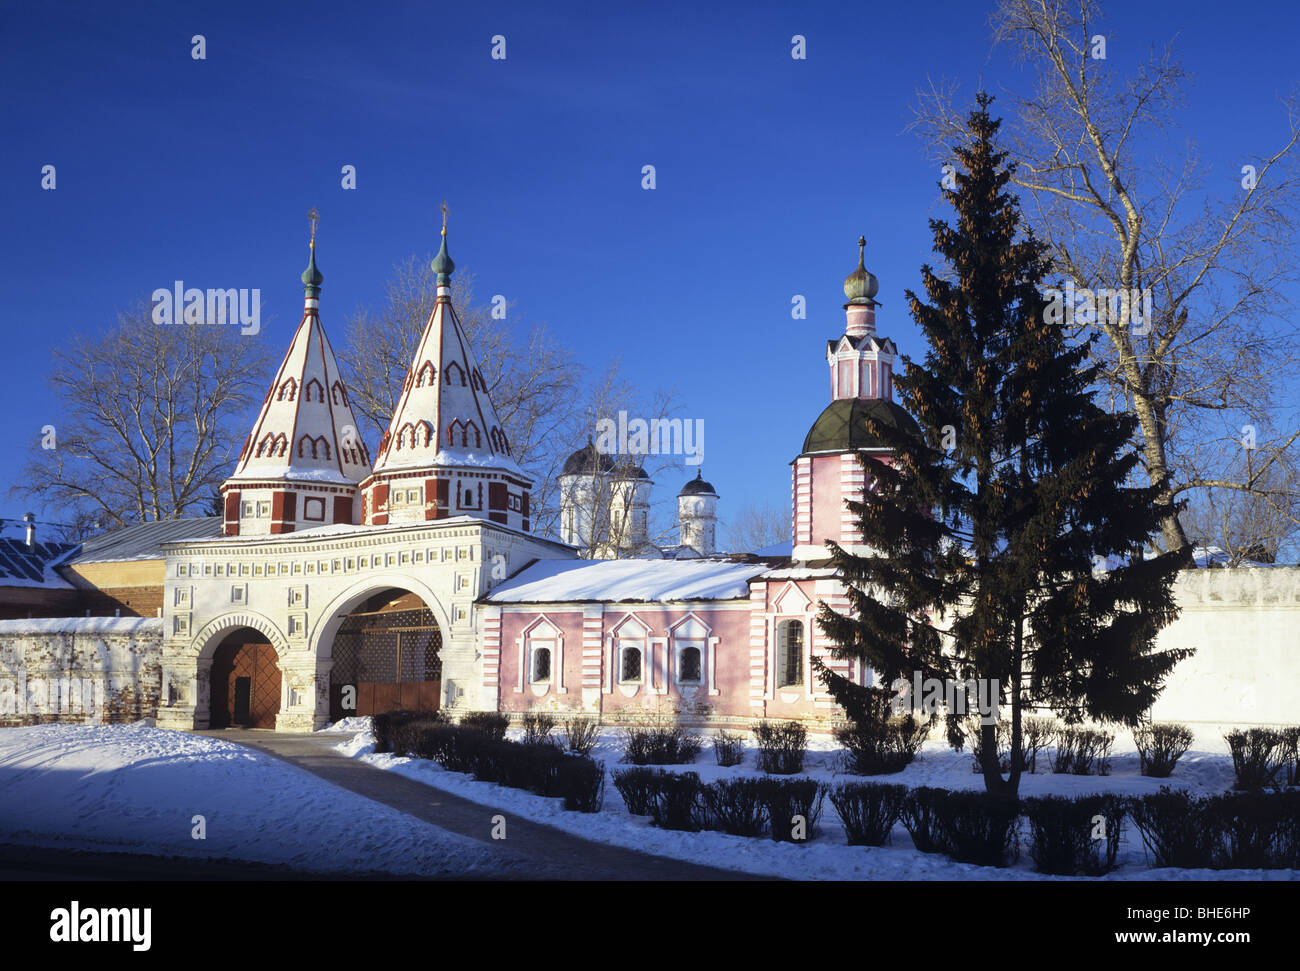 Suzdal town View in winter, near Vladimir, Russia - Stock Image